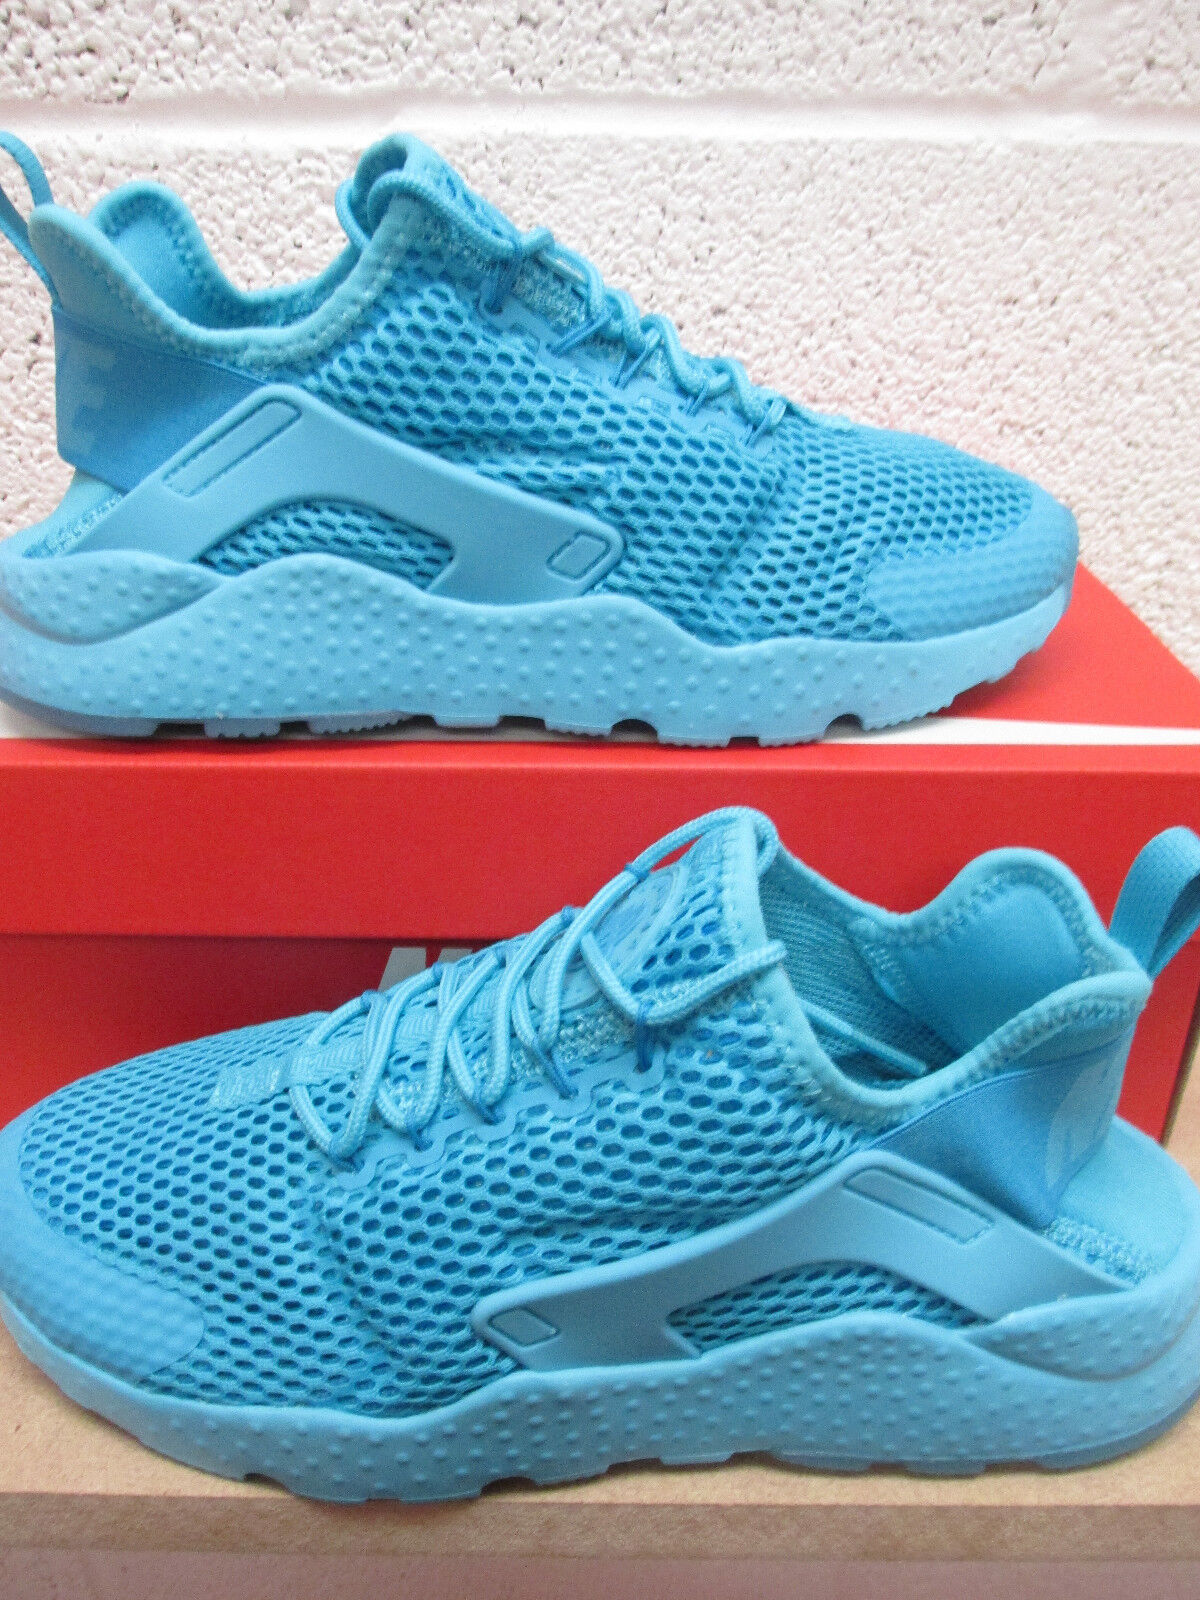 Nike Wo Hommes Huarache Run Ultra BR BR Ultra Trainers 833292 400 Baskets Chaussures 9b955c